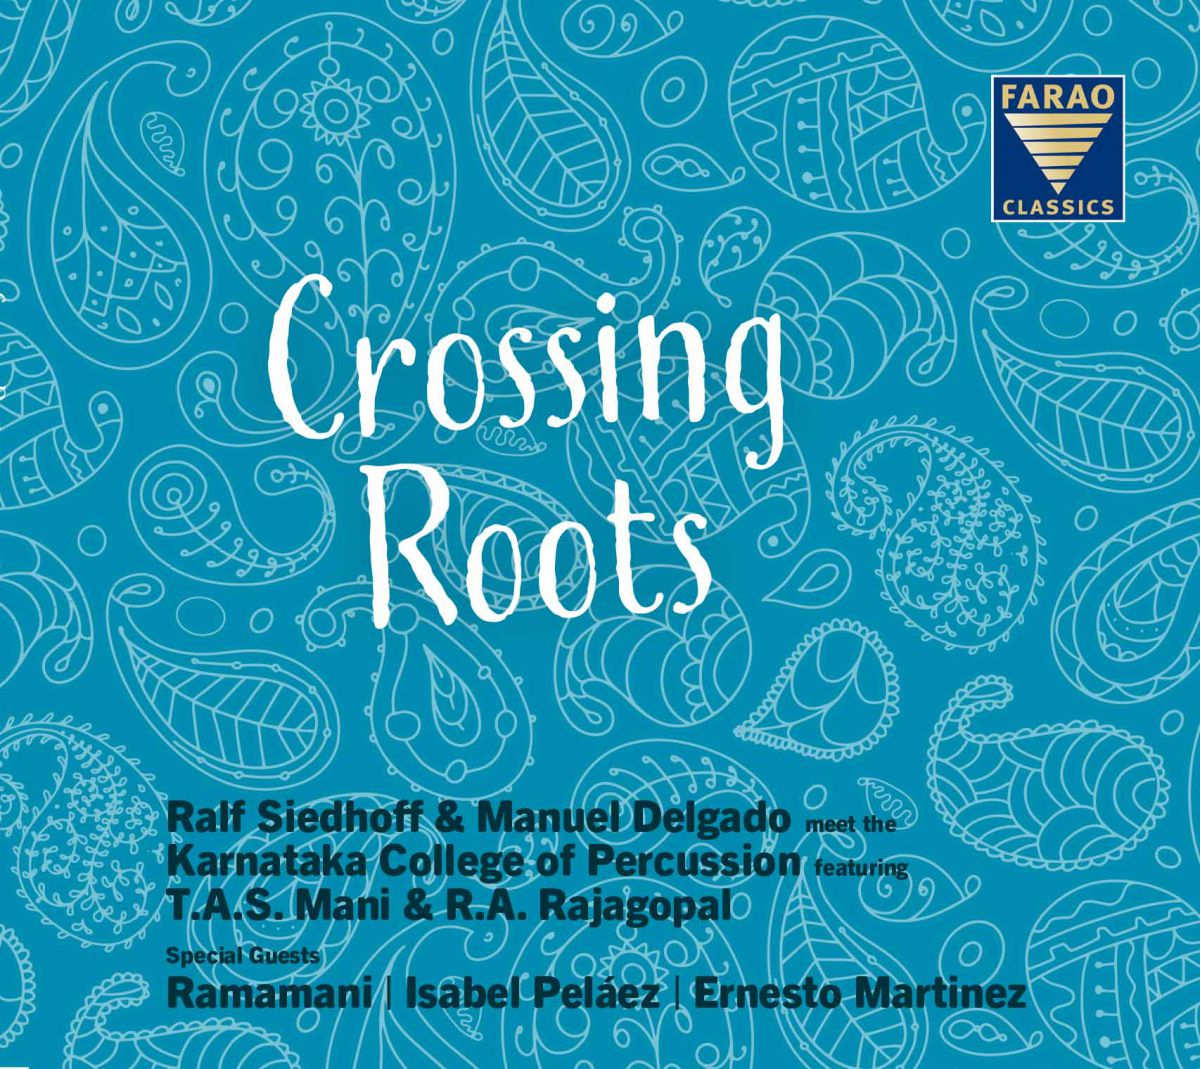 "Songs of the recording ""Crossing Roots"" The Guitar Duo meets The Karnataka College of Percussion"